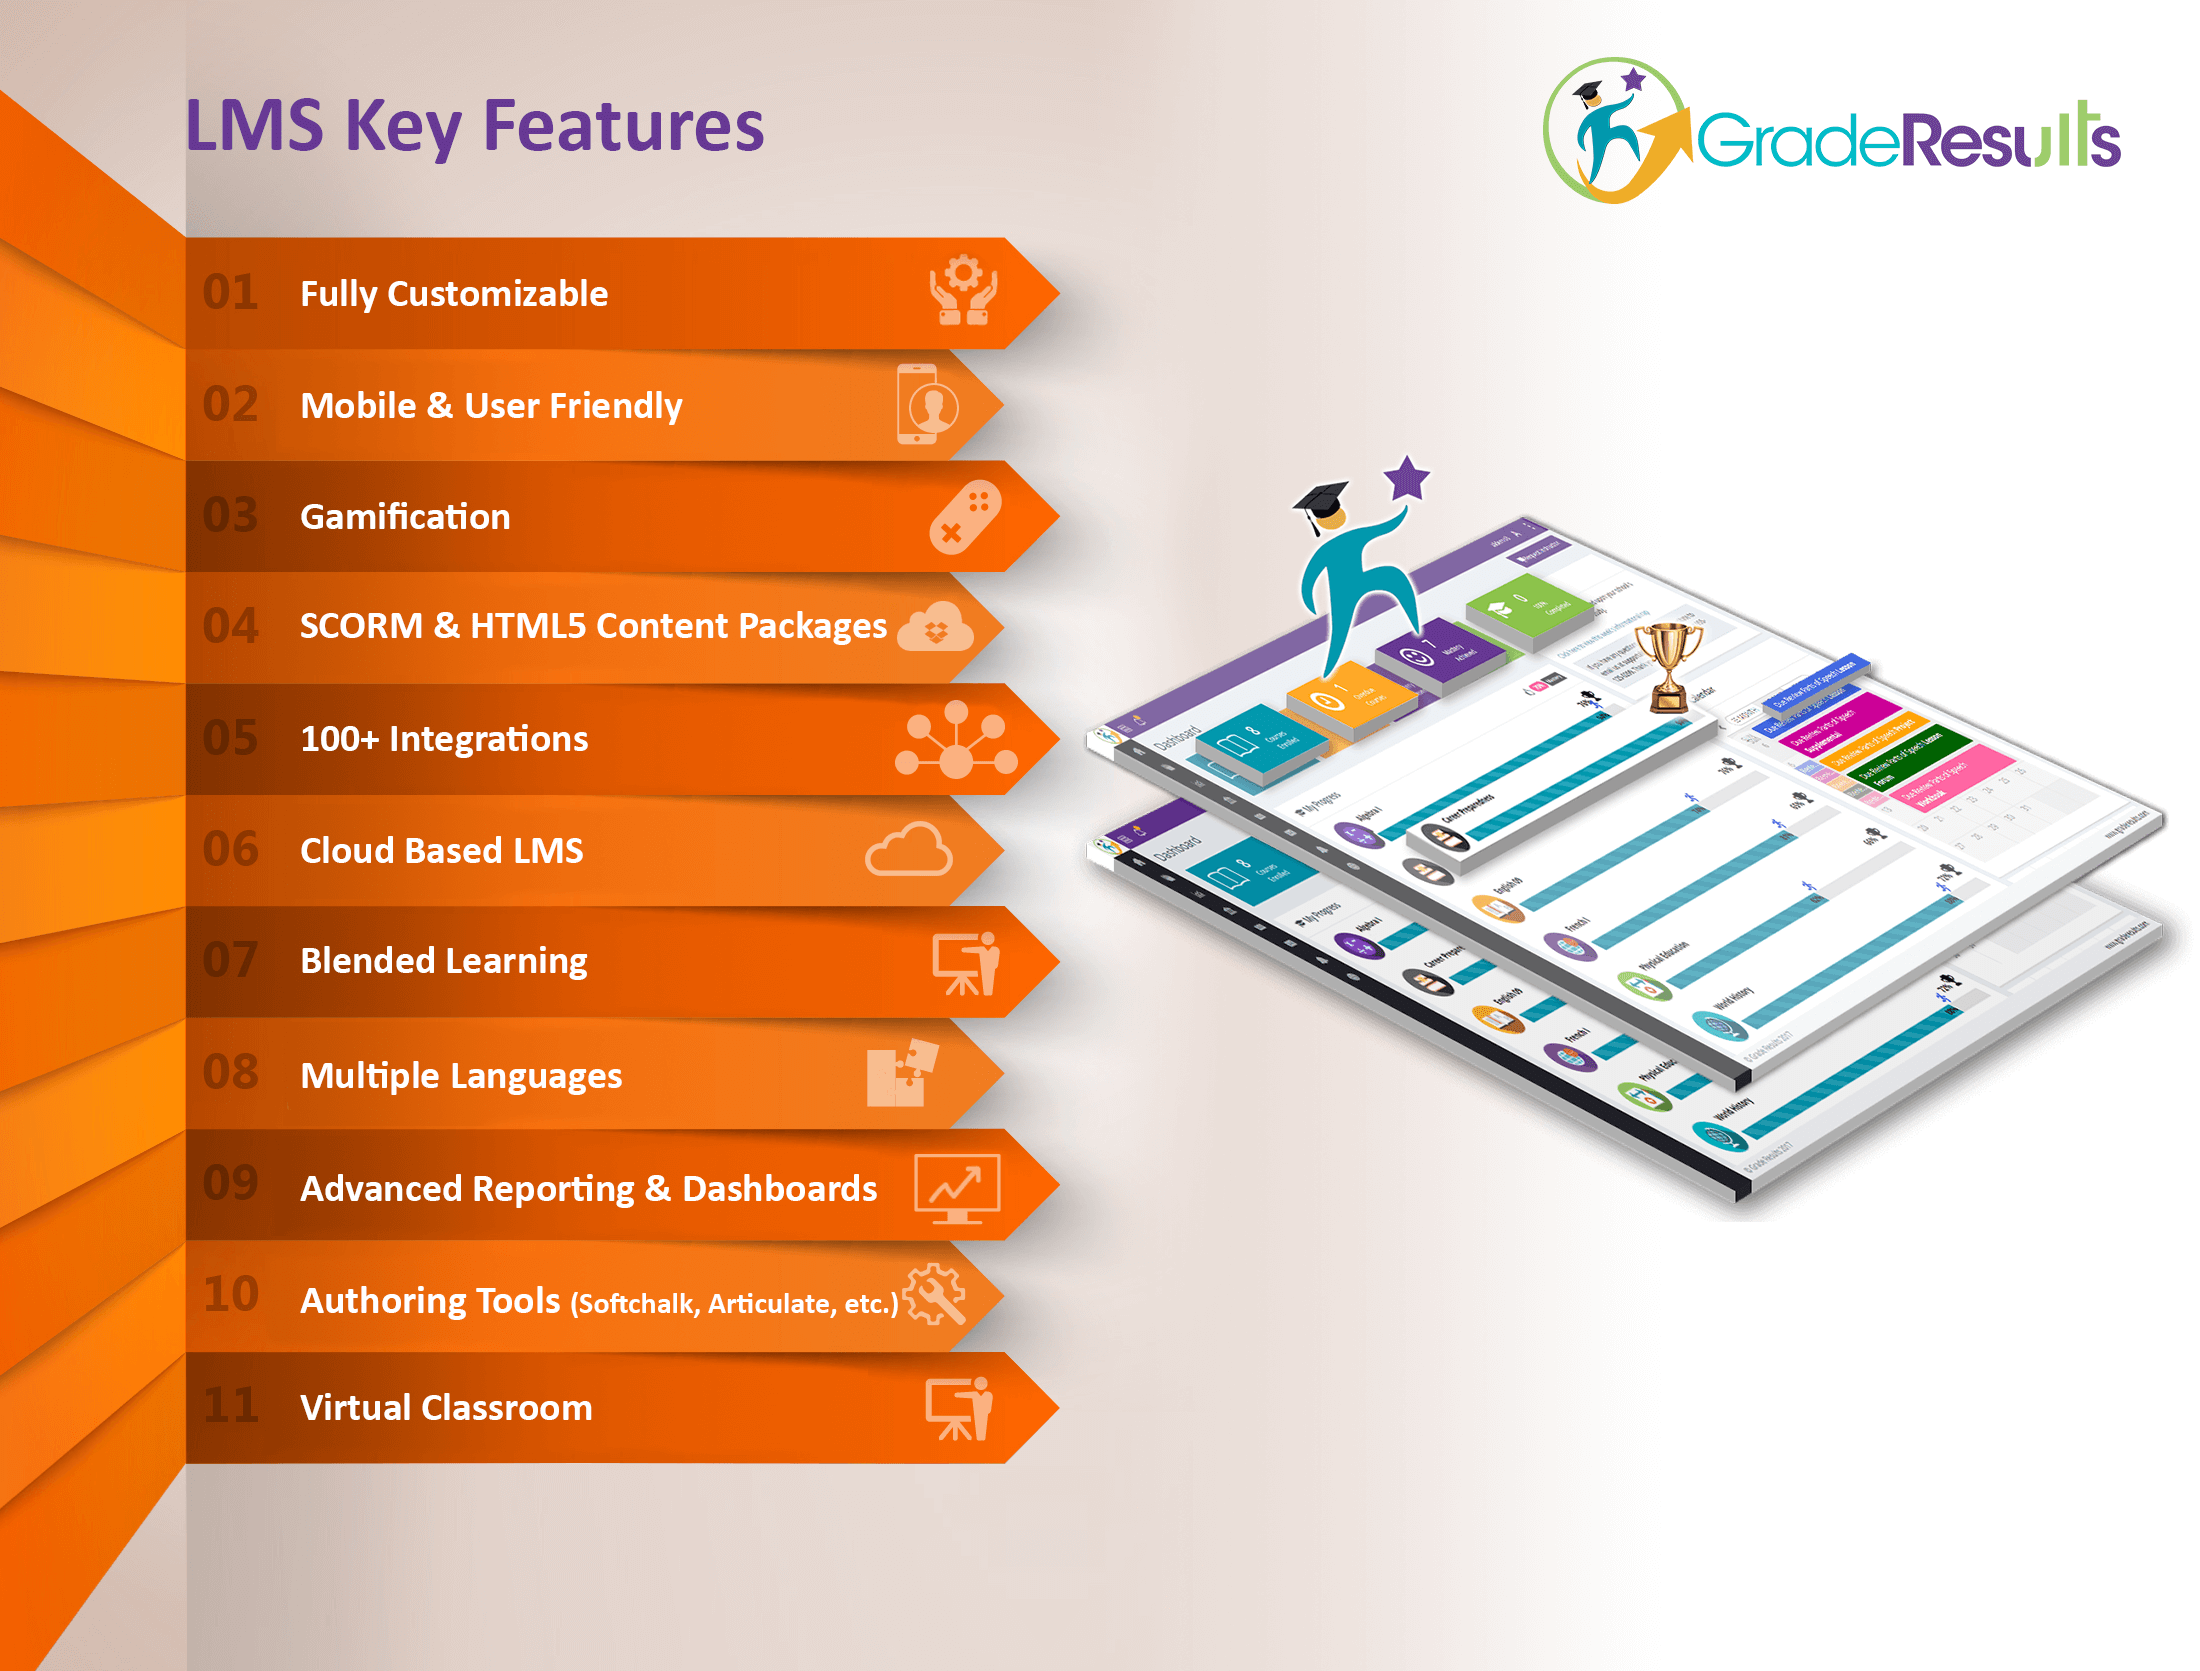 Grade Results LMS Key Features